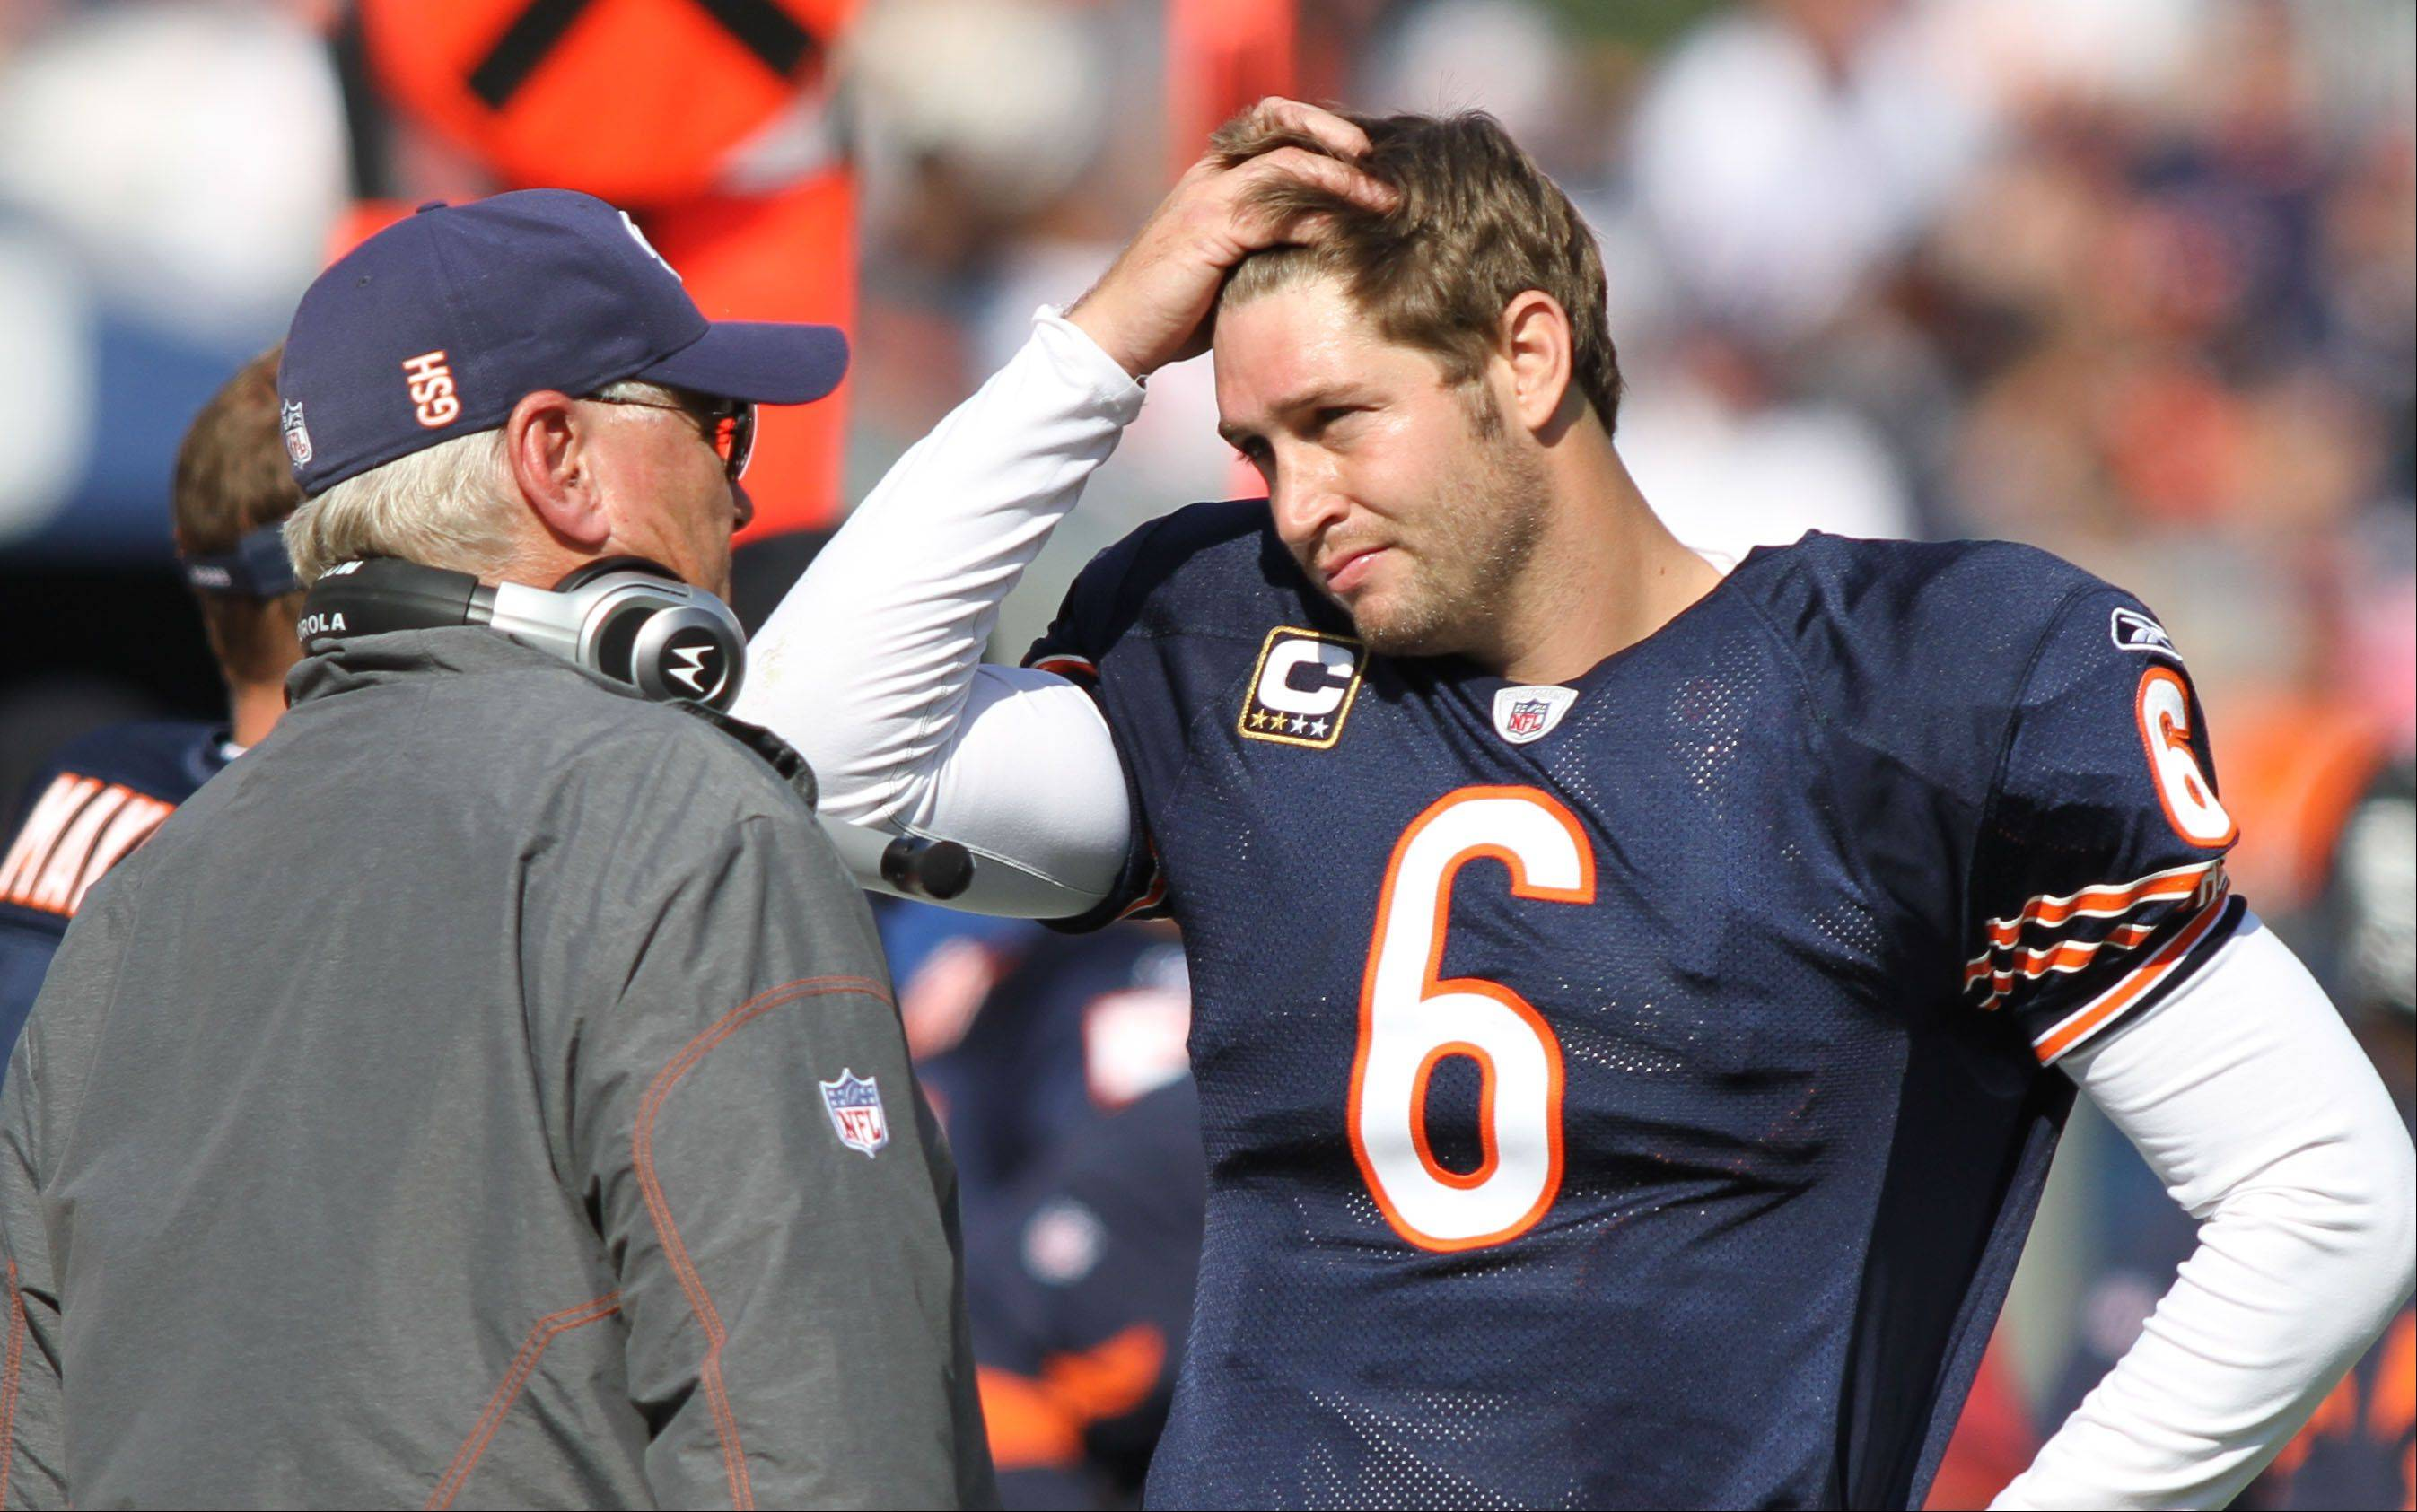 Former Chicago Bears offensive coordinator Mike Martz, here talking with Jay Cutler, has joined FOX as an NFL analyst this fall.